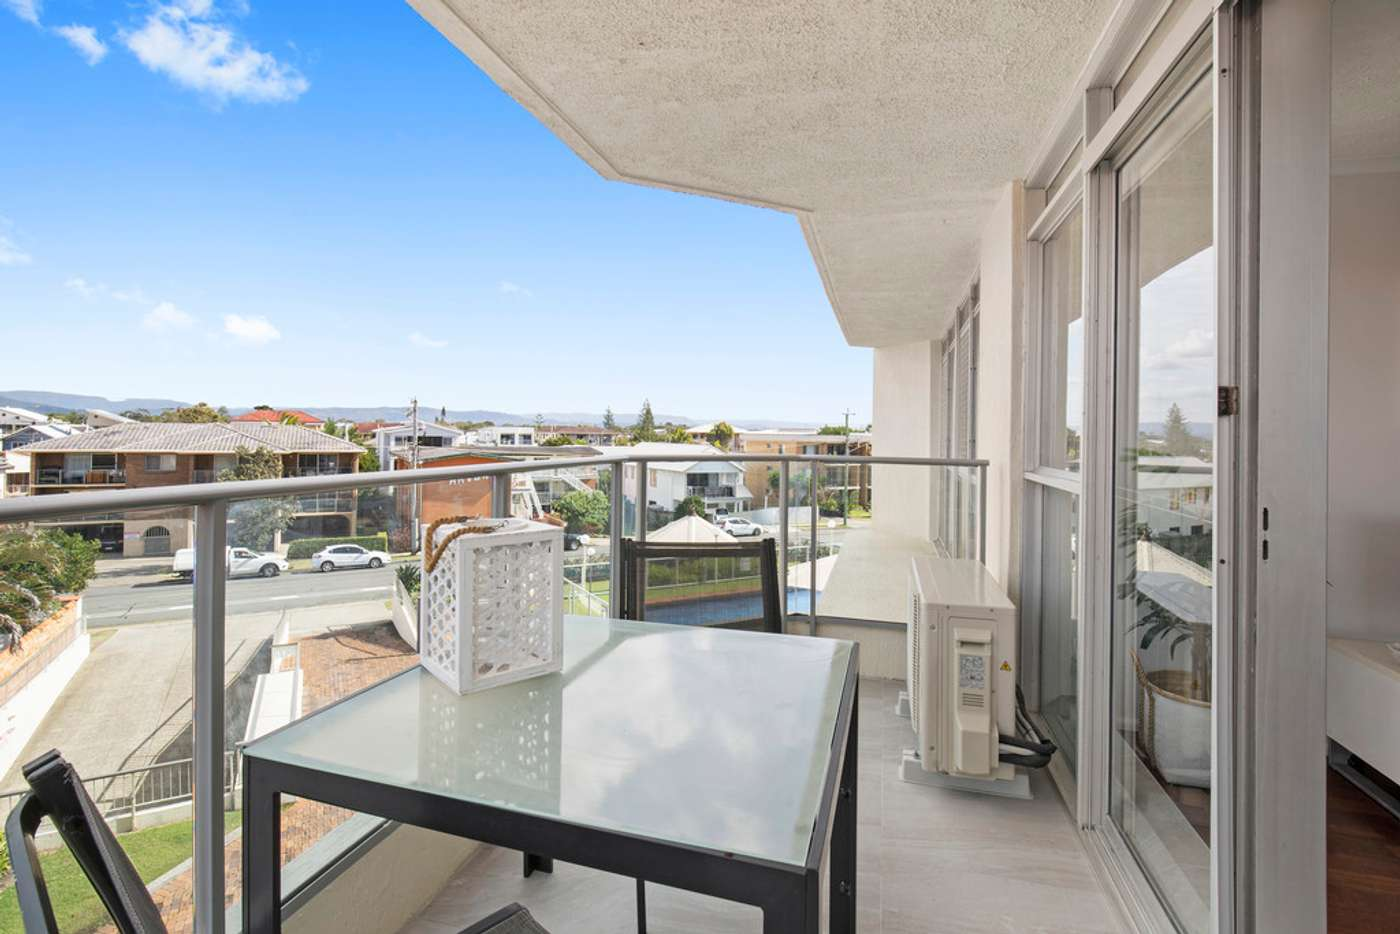 Fifth view of Homely apartment listing, 13/67-71 Albatross Avenue, Mermaid Beach QLD 4218